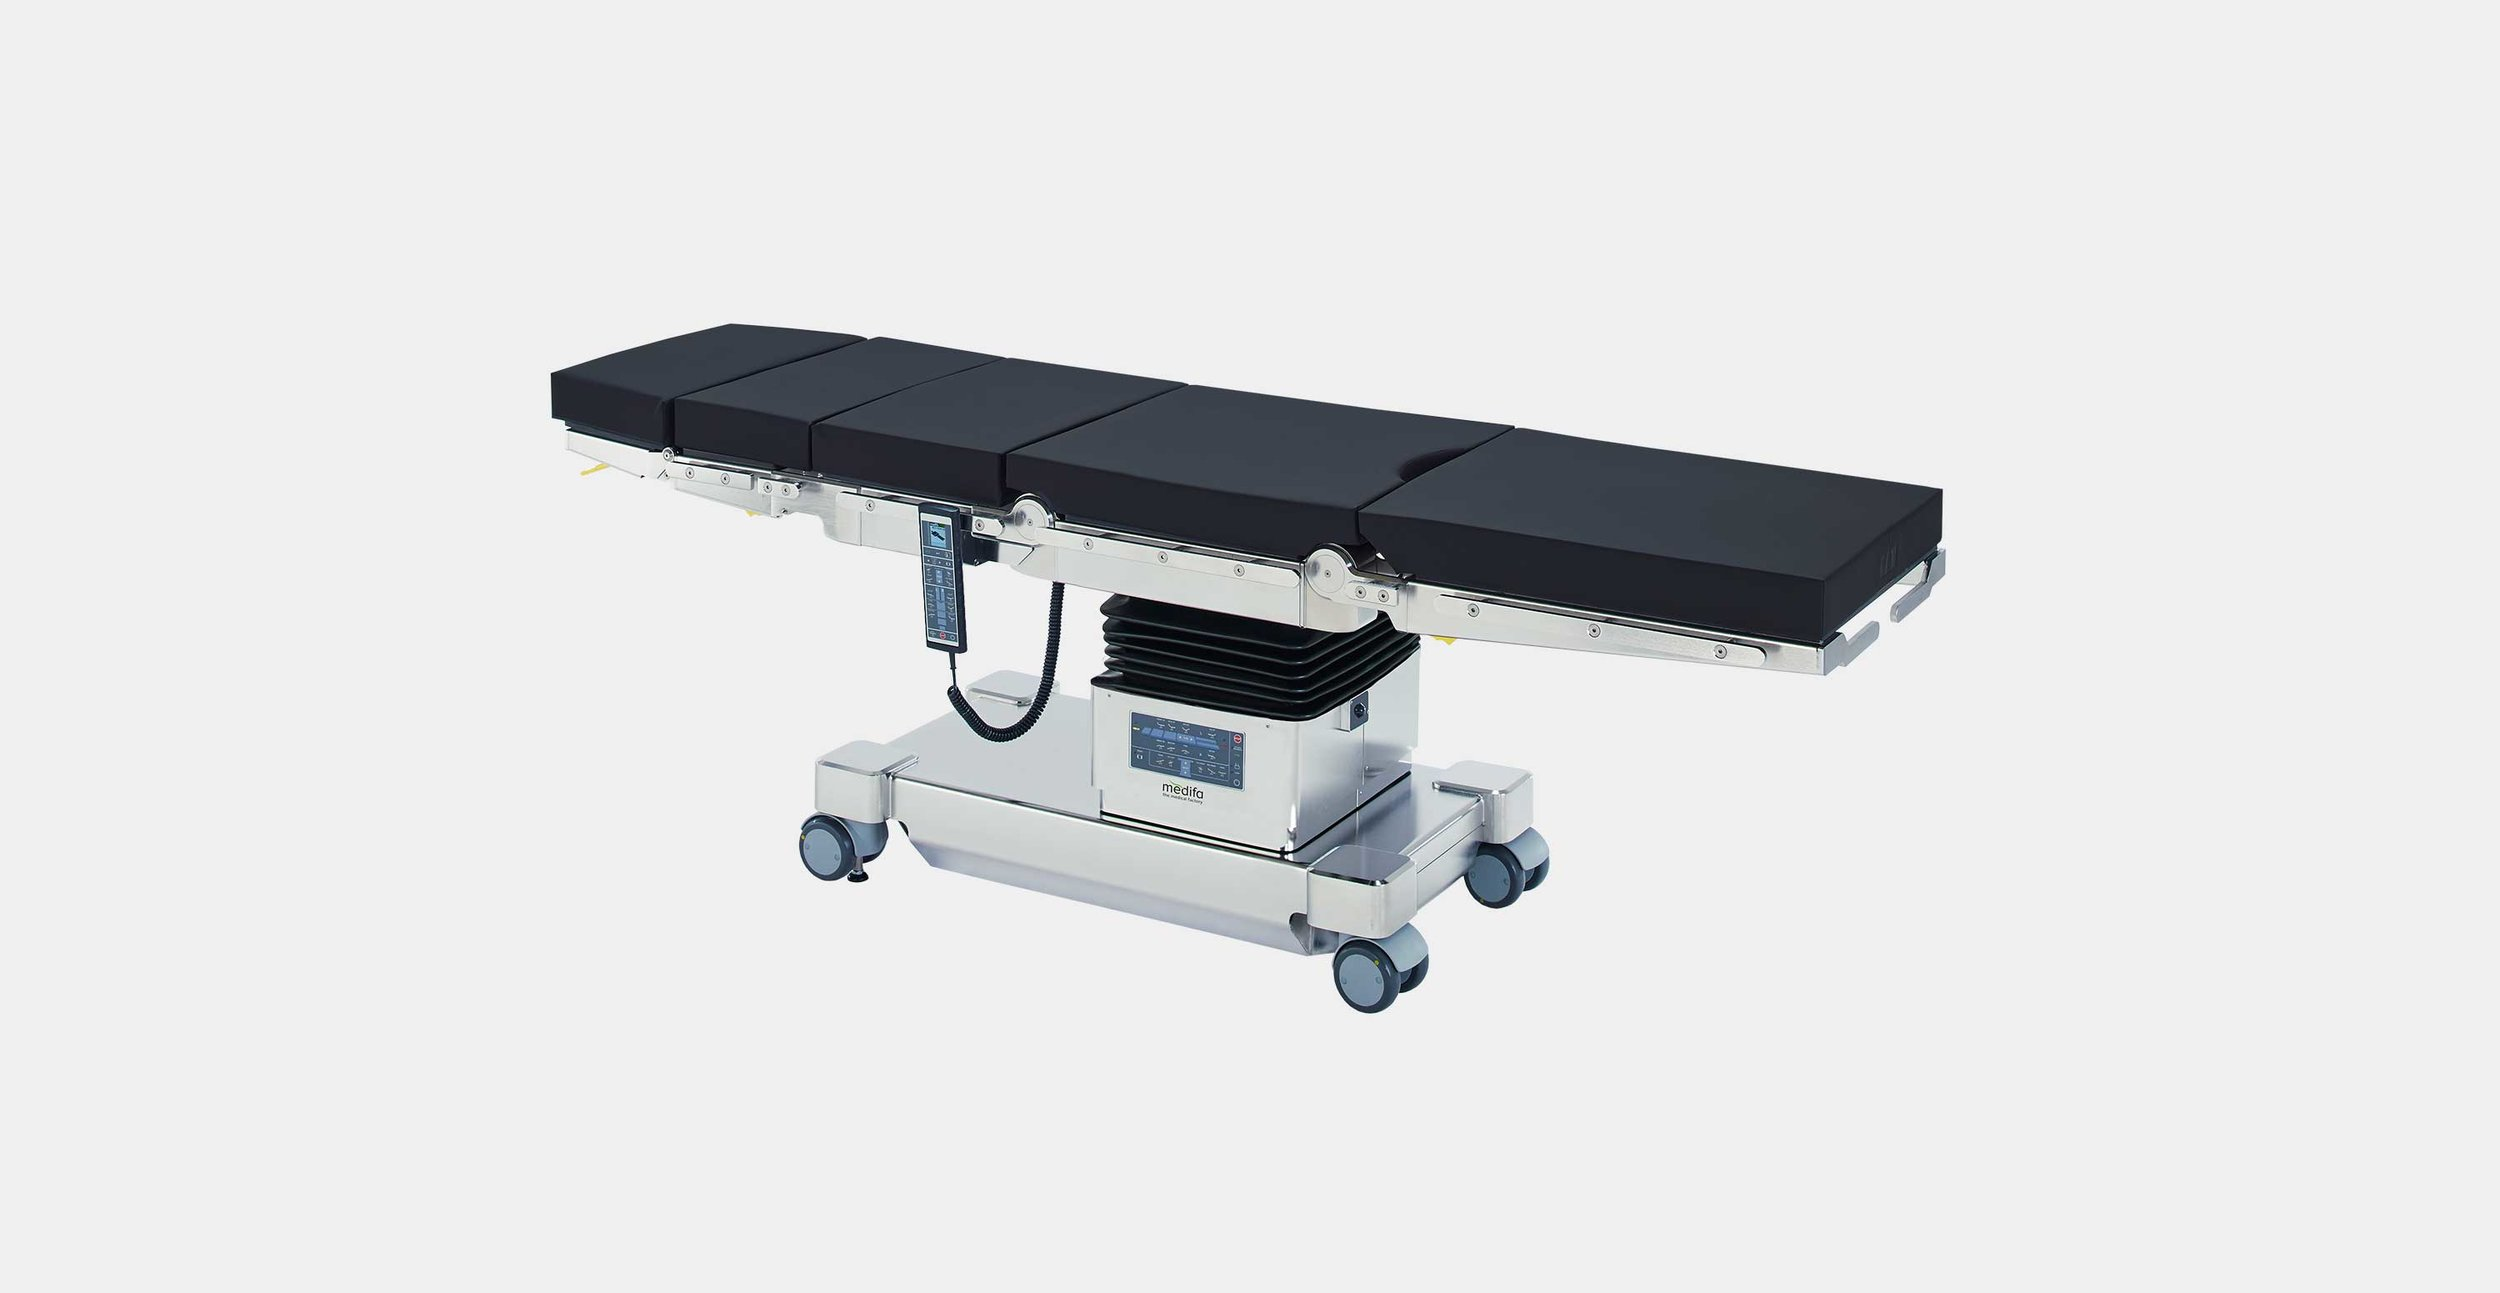 medifa 7000 serie - The medifa 7000 mobile operating table is the all-rounder among the medifa operating tables. In terms of flexibility and expandability, optimum base height (580 mm), ease of use and extremely high load capacity (544 kg total load), this operating table meets the highest requirements in the operating room.download the brochure click here